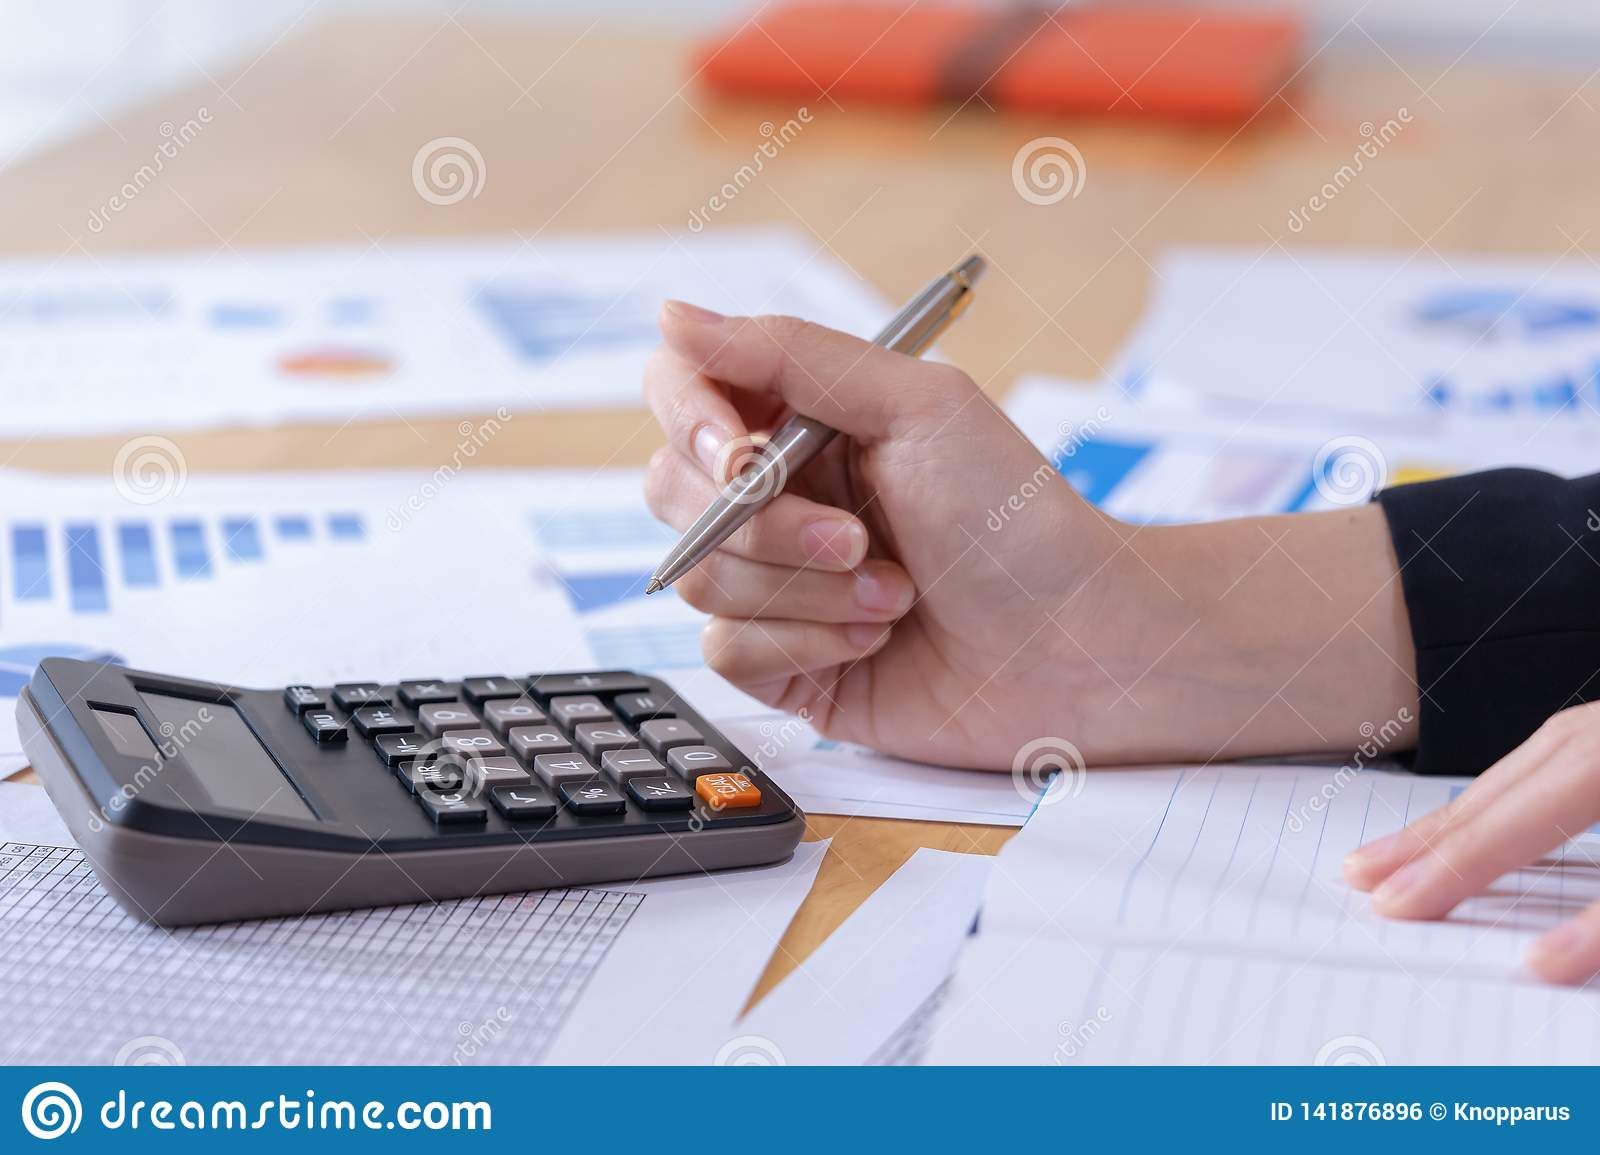 Woman entrepreneur using a calculator to calculating financial expense at office